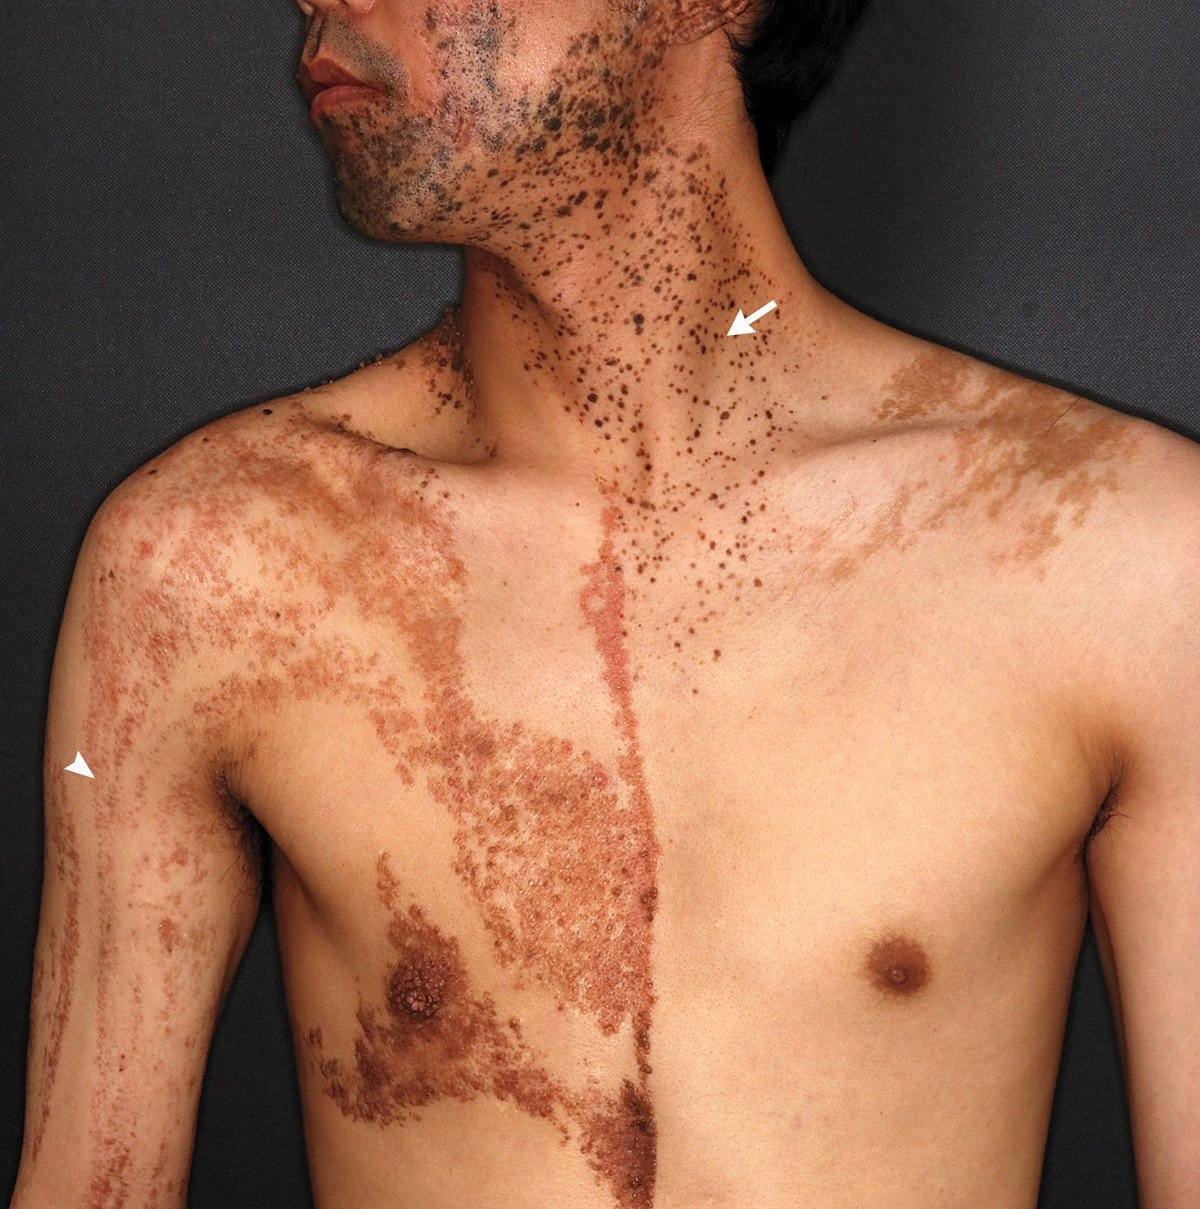 A 37 Year Old Man Came To The Dermatology Clinic With